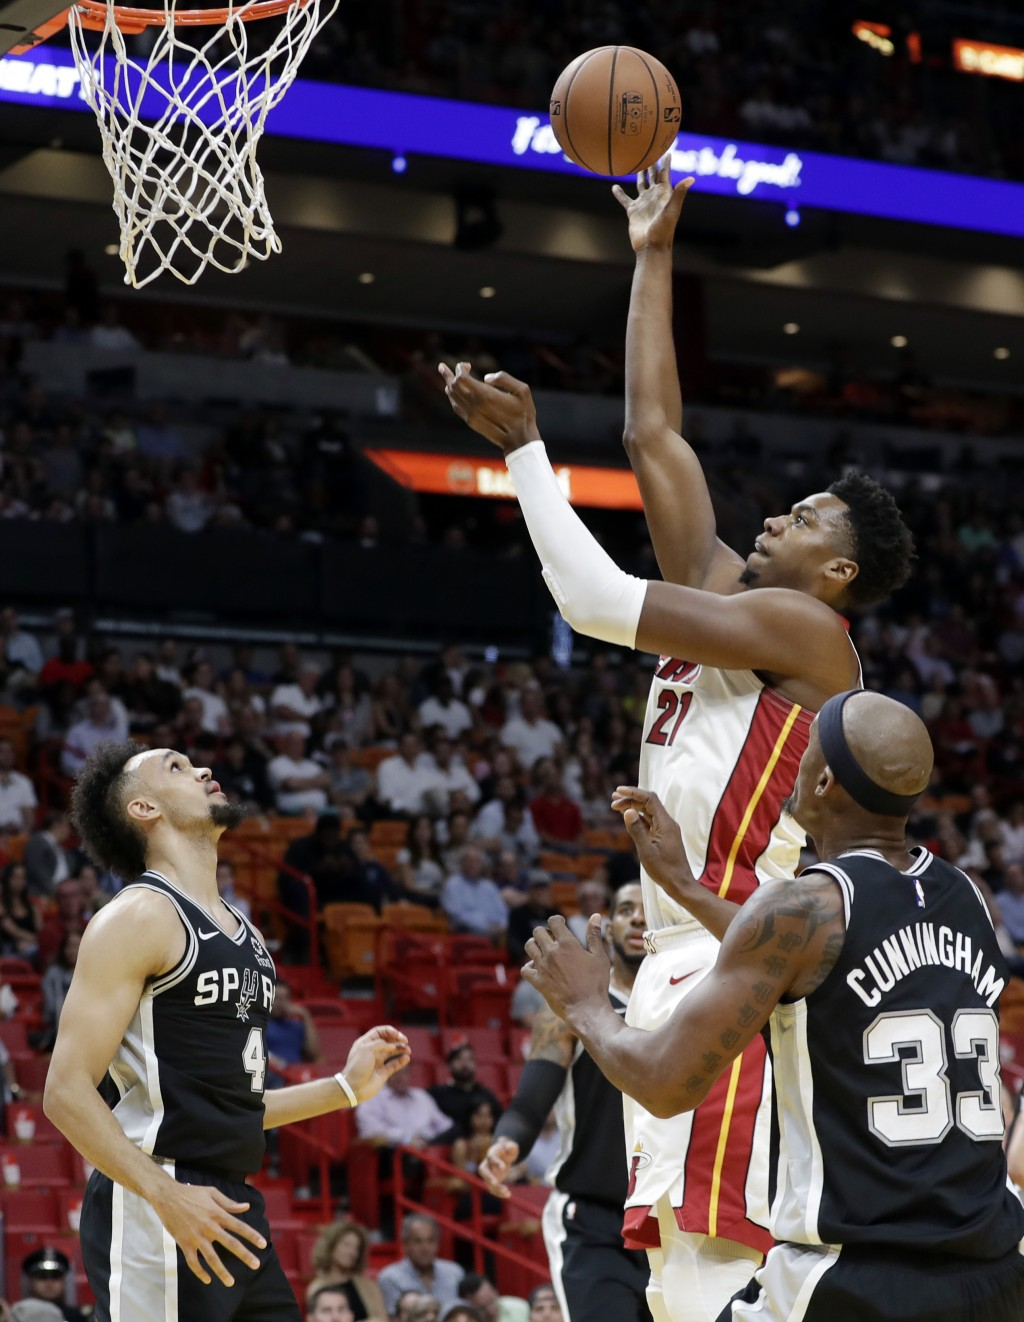 Miami Heat center Hassan Whiteside (21) shoots over San Antonio Spurs guard Derrick White (4) and forward Dante Cunningham (33) during the first half